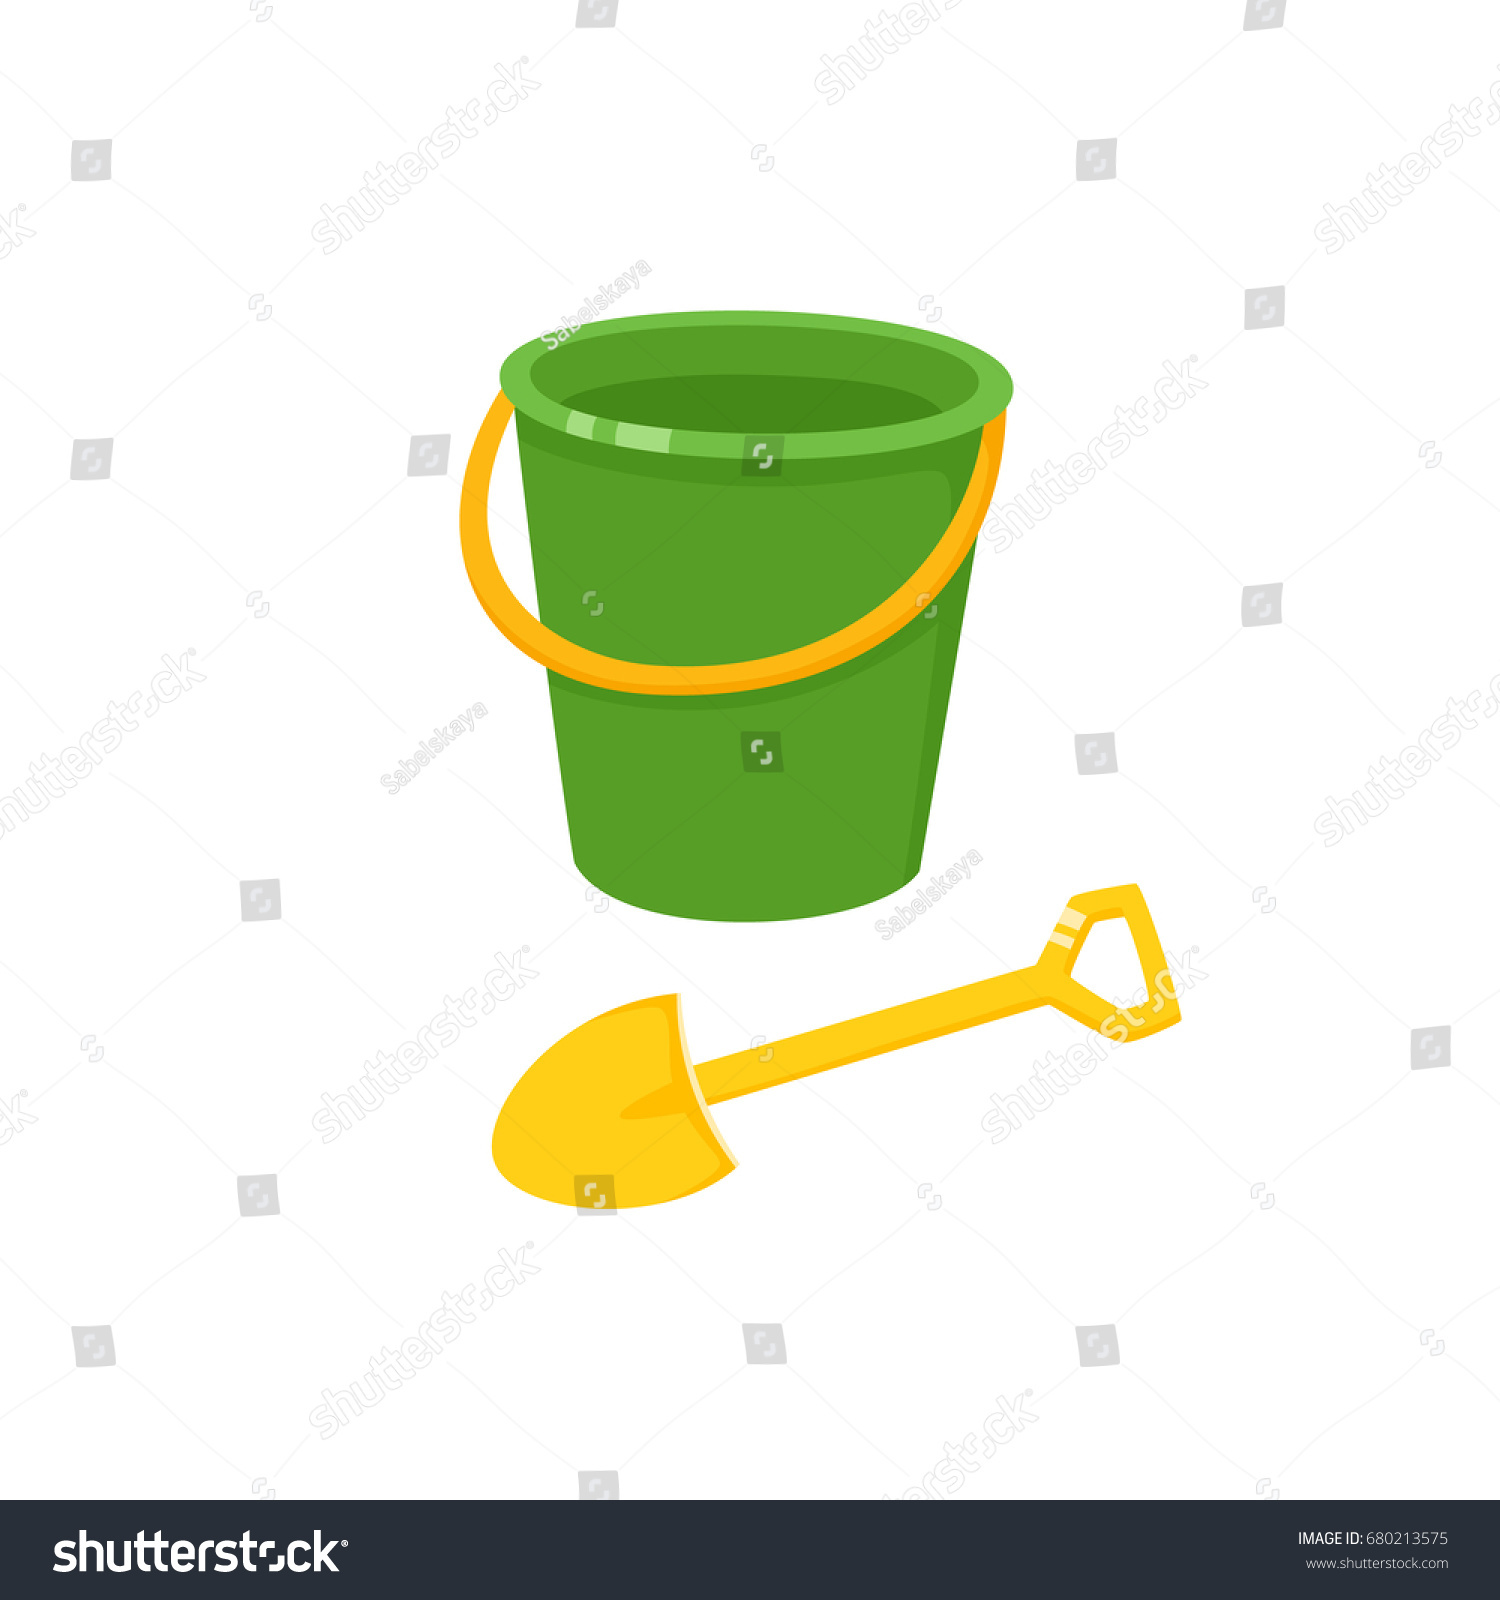 Uncategorized Toy Pail vector baby bucket sand shovel toy stock 680213575 and flat illustration child spade pail plastic